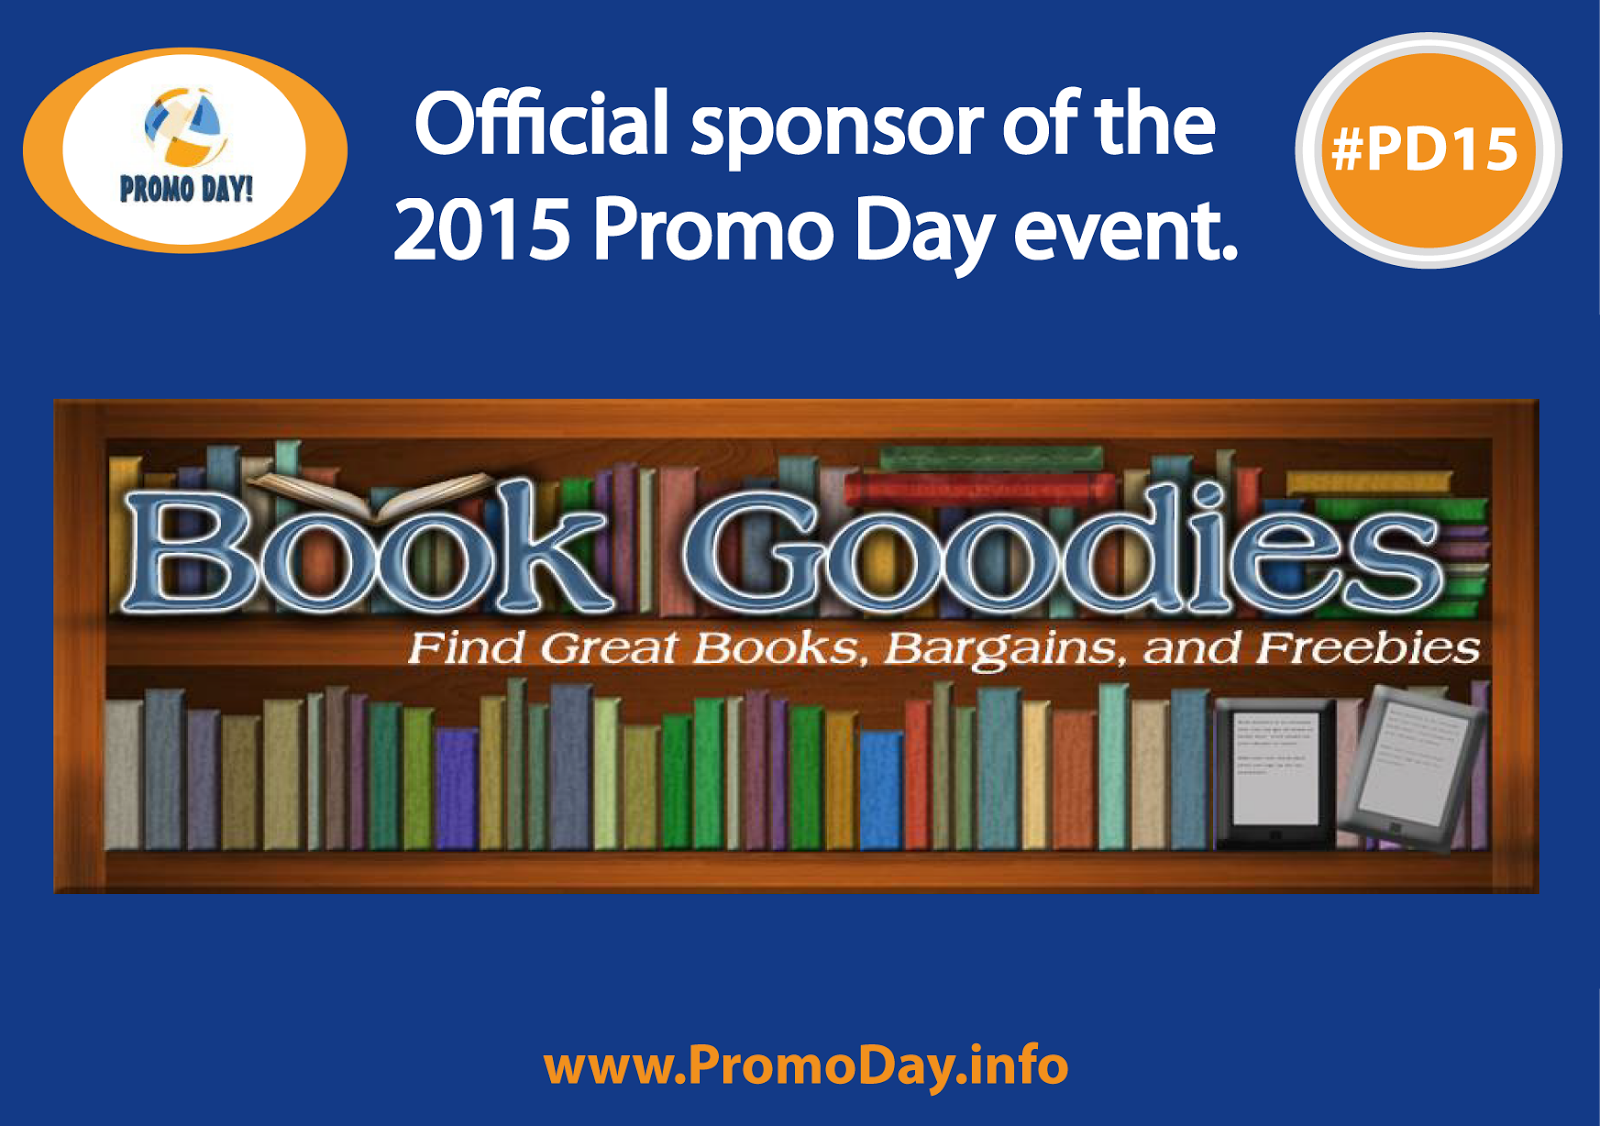 Meet the #PD15 Sponsors, Book Goodies, www.PromoDay.info